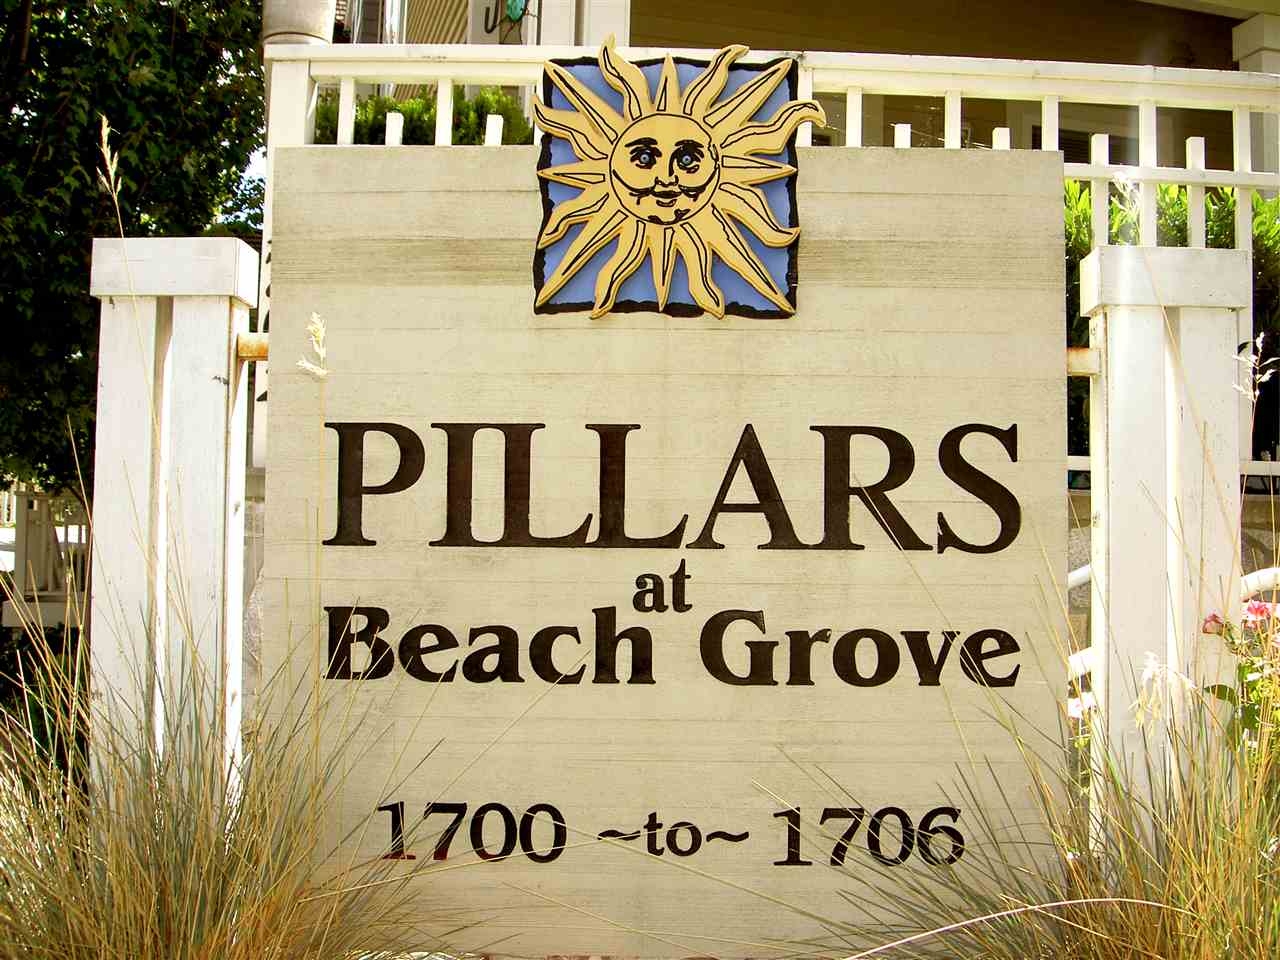 "Main Photo: 105 1702 56 Street in Delta: Beach Grove Townhouse for sale in ""THE PILLARS"" (Tsawwassen)  : MLS® # R2217254"